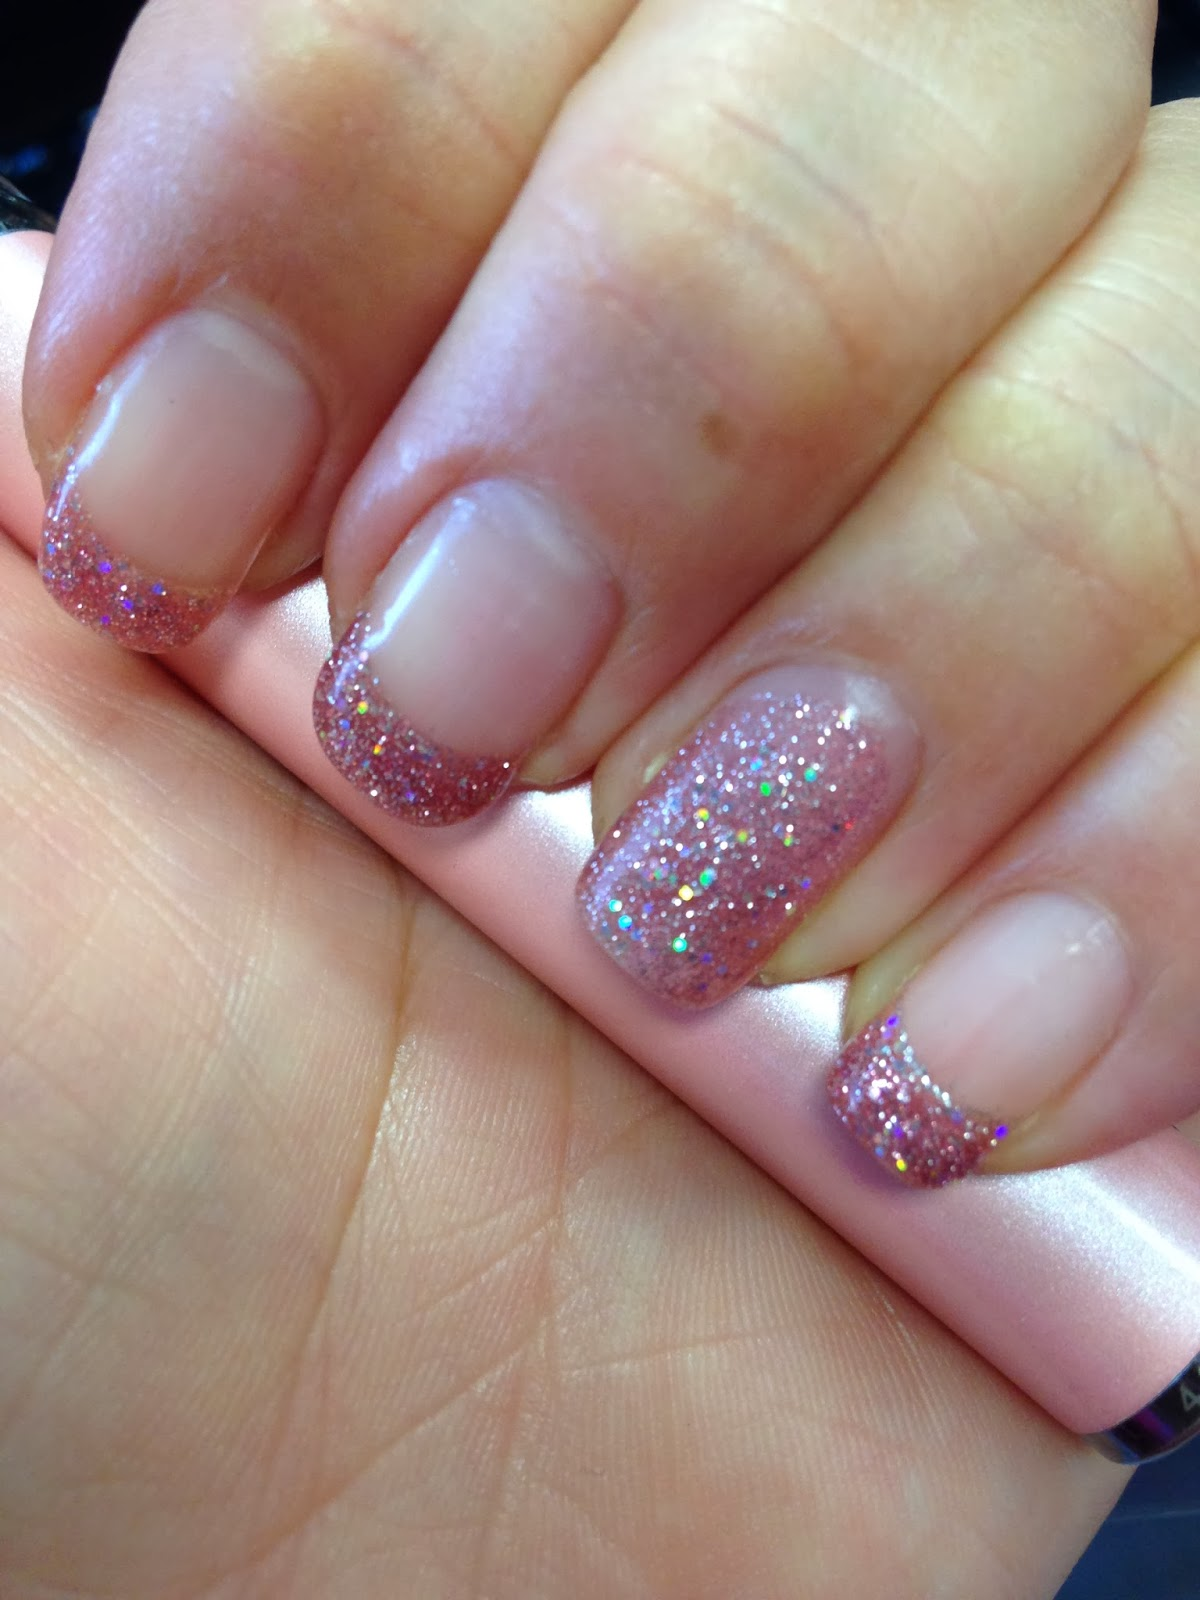 Bling it ON!: Fingerpaint Gel Nails............